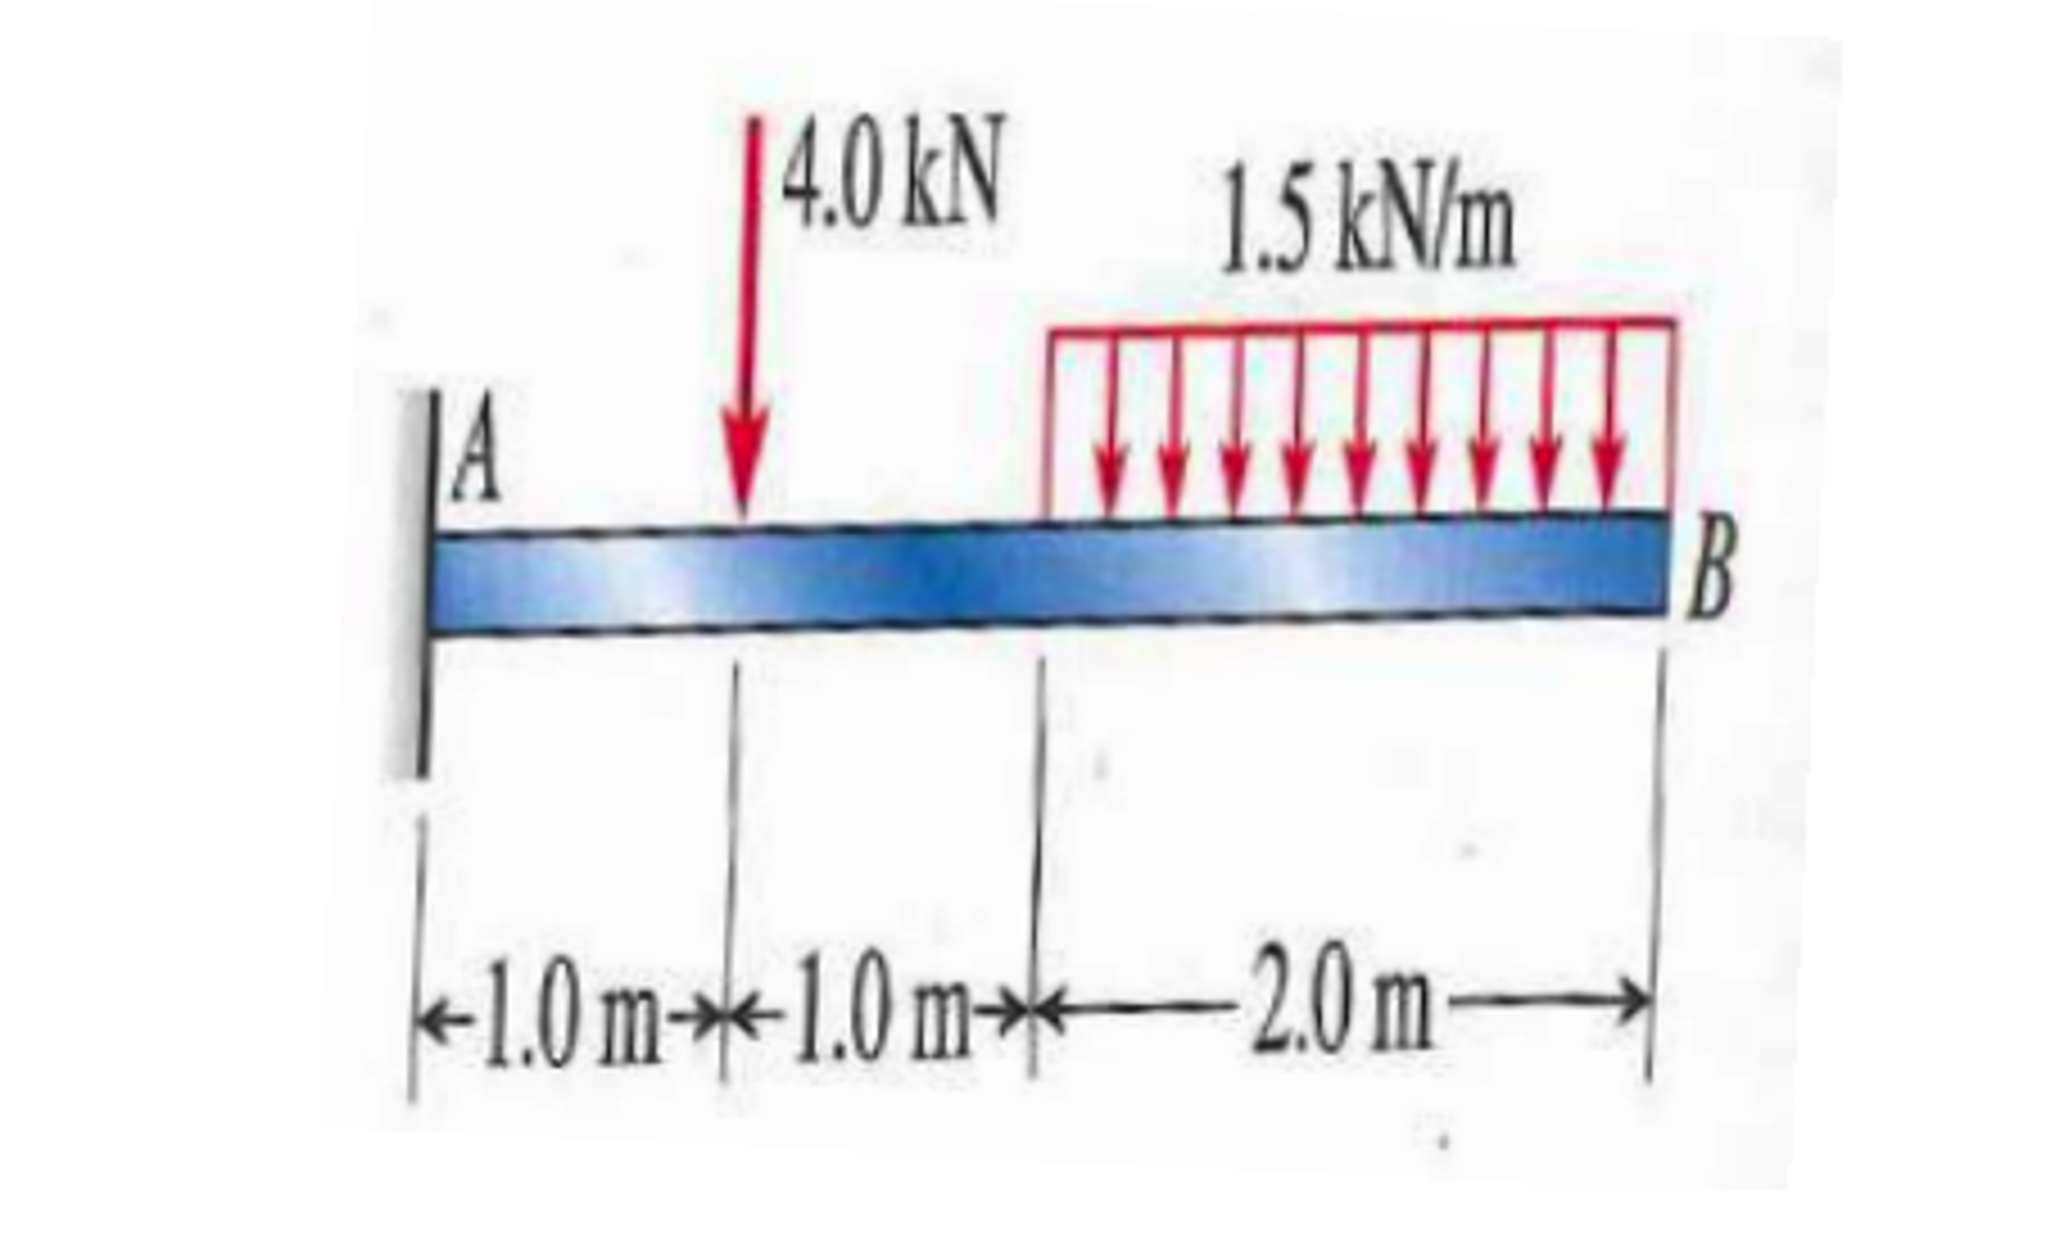 Solved Draw The Shear Force V And Bending Moment M Di Diagrams Cheggcom For Beams Shown Below 140ln 15kn 1010 20 10m